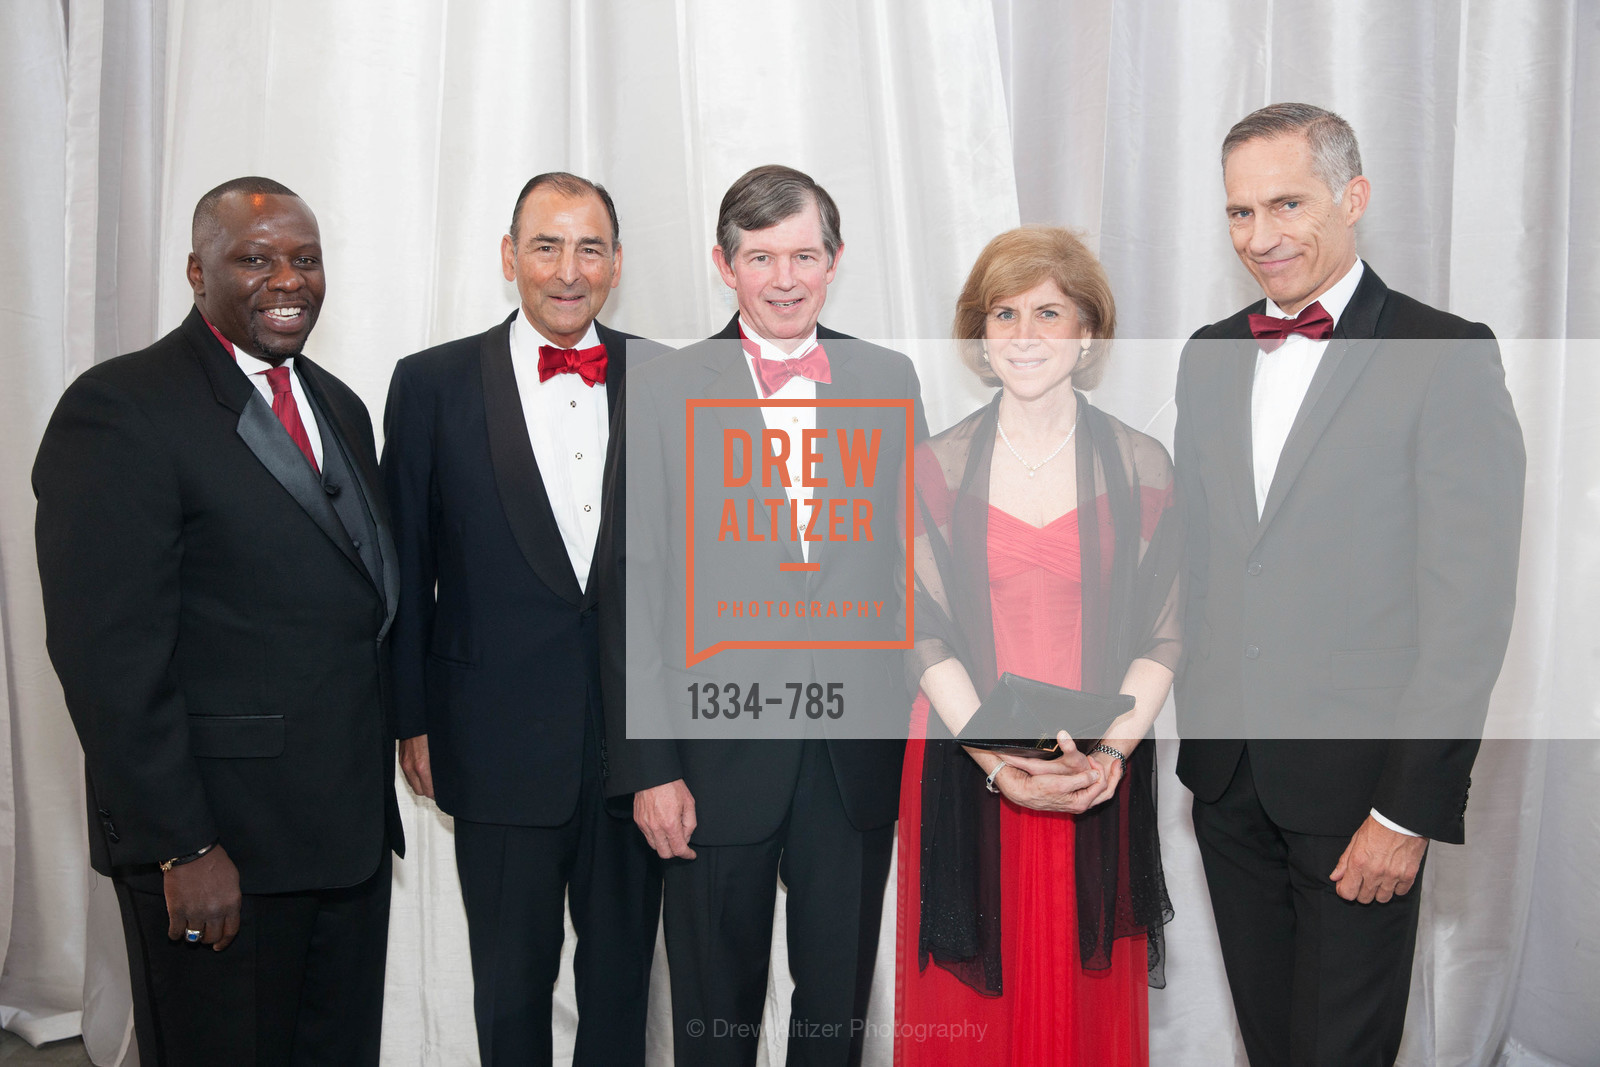 Keith White, Alexander Mehran, Anthony Earley, Gail McGovern, Mark Cloutier, 2015 RED CROSS Gala, US, April 11th, 2015,Drew Altizer, Drew Altizer Photography, full-service agency, private events, San Francisco photographer, photographer california